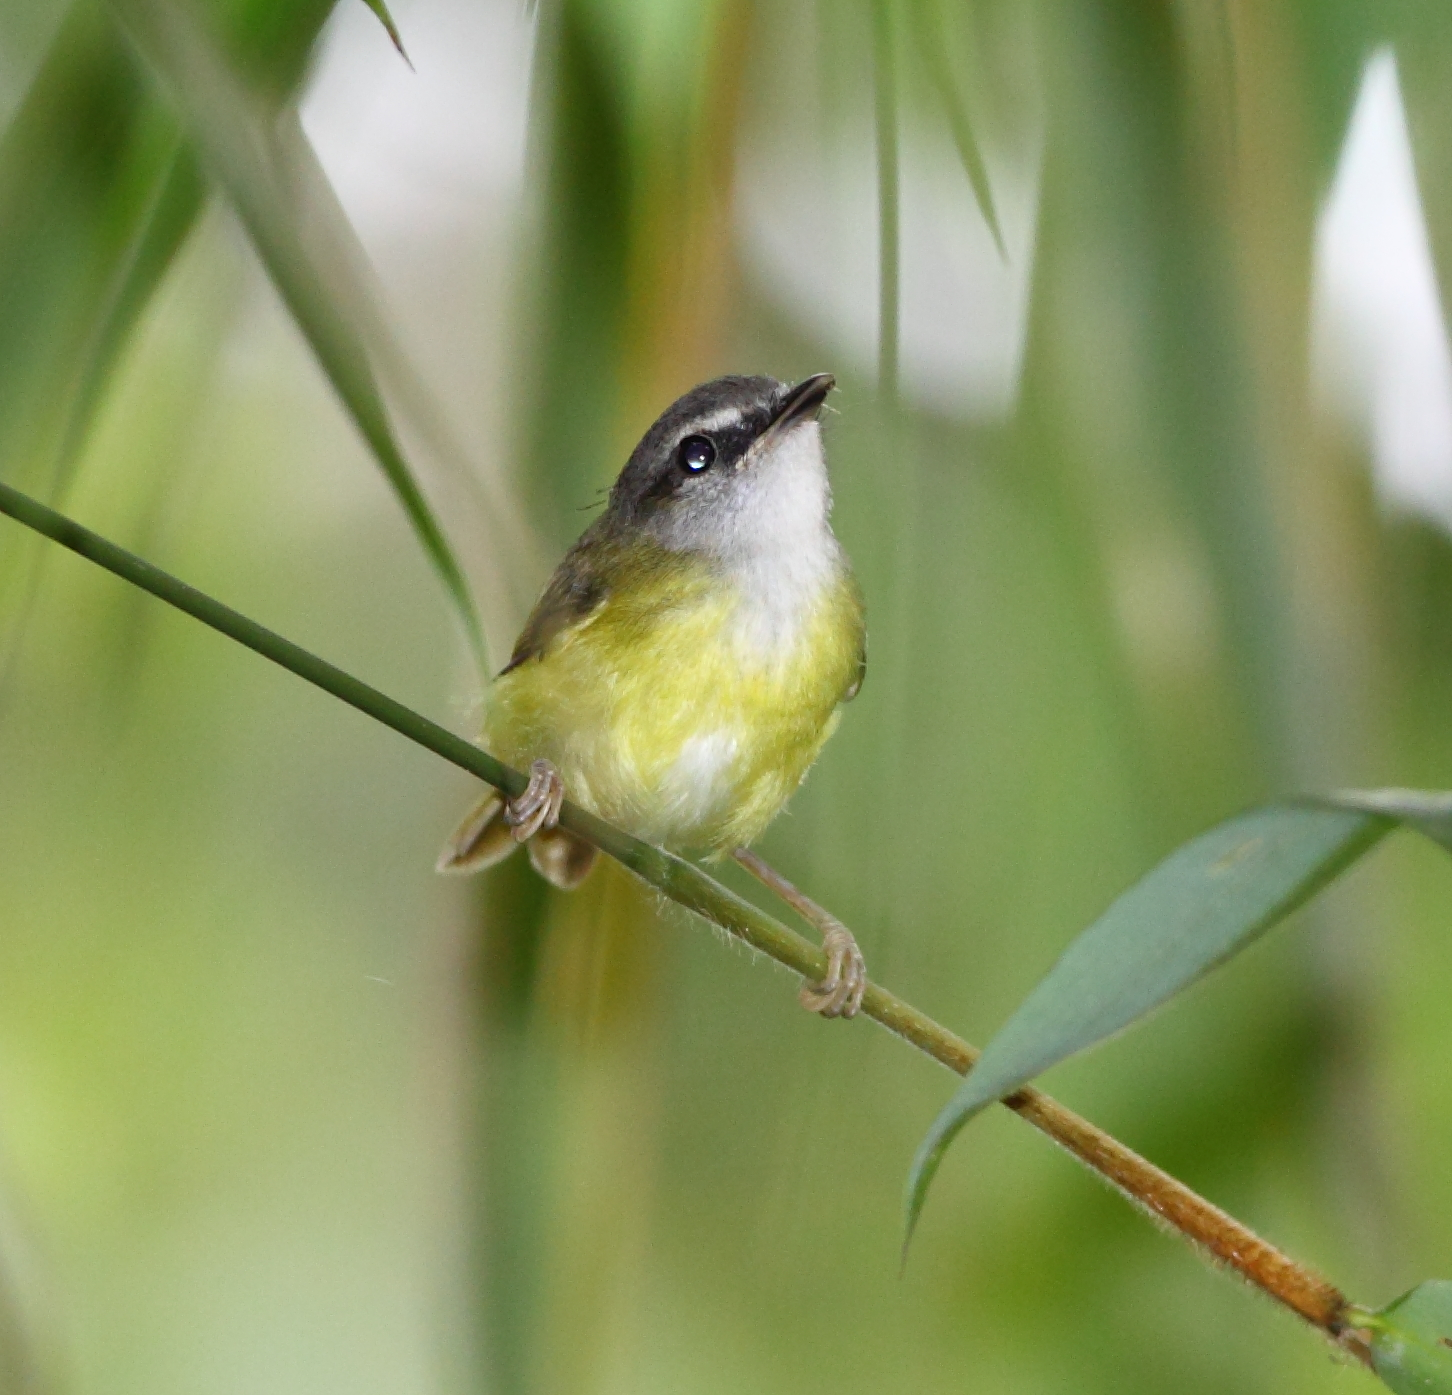 White Bellied Warbler Yellow-bellied Warbler